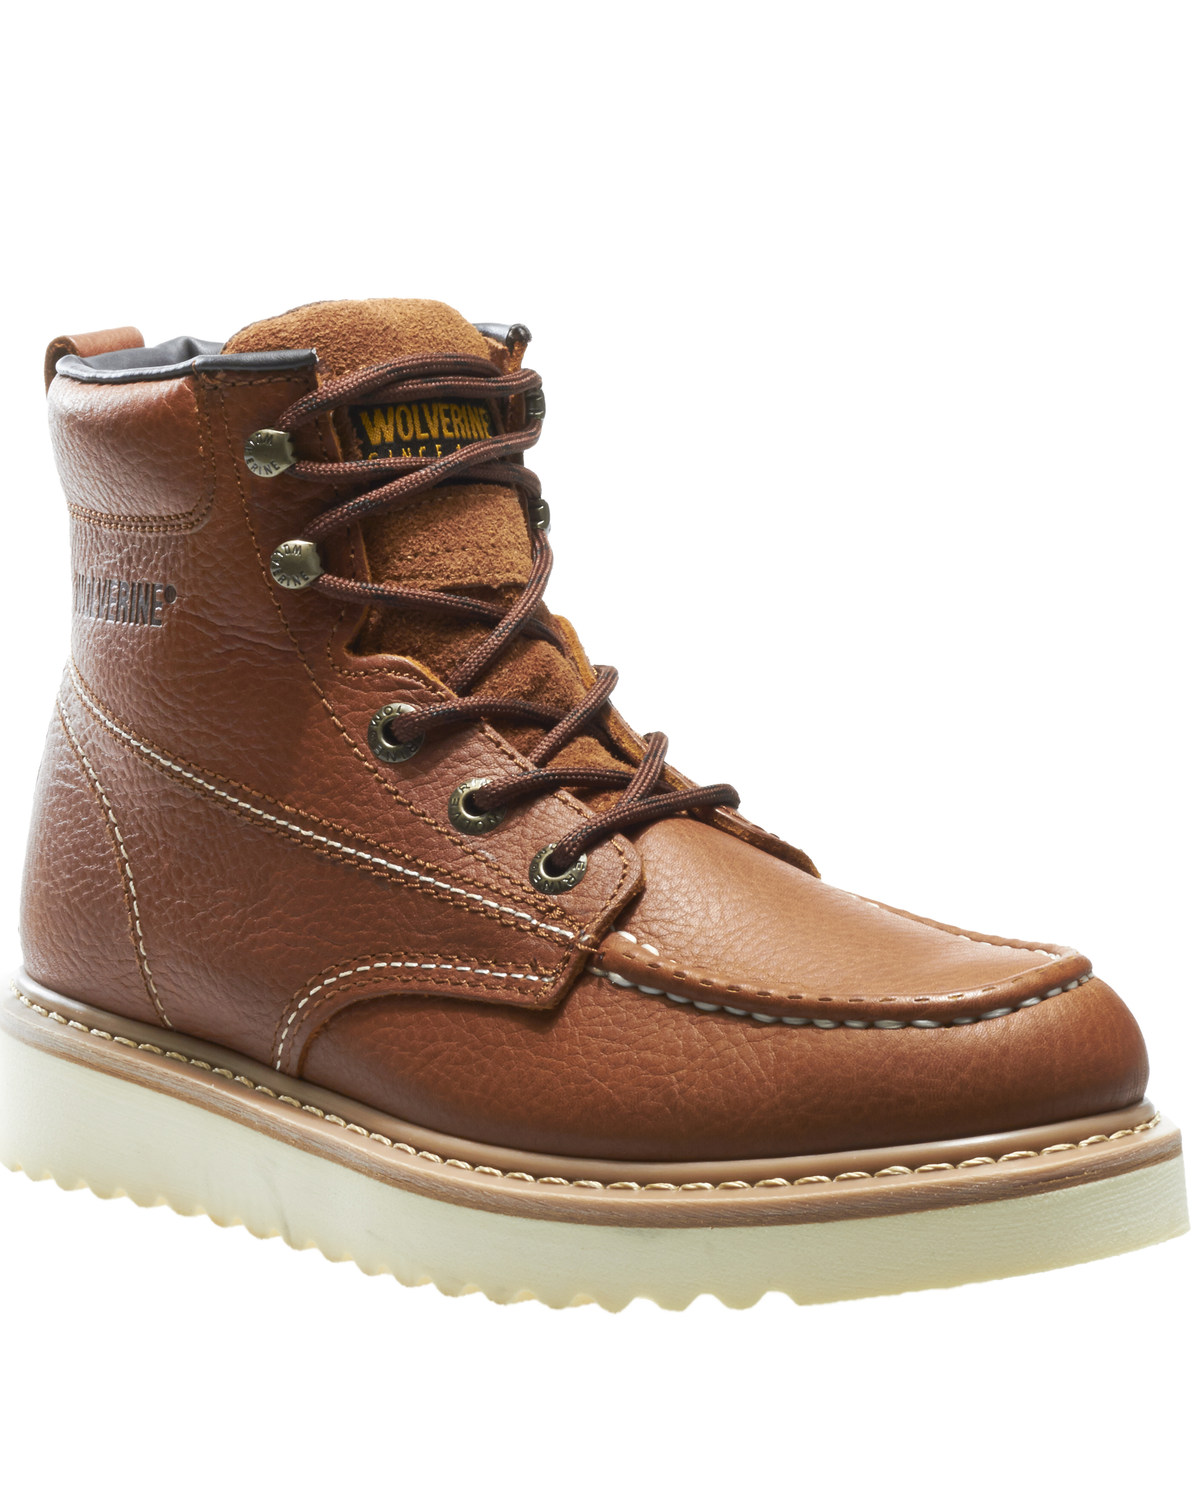 51bfbae494e Wolverine Men's Moc Toe Work Boots